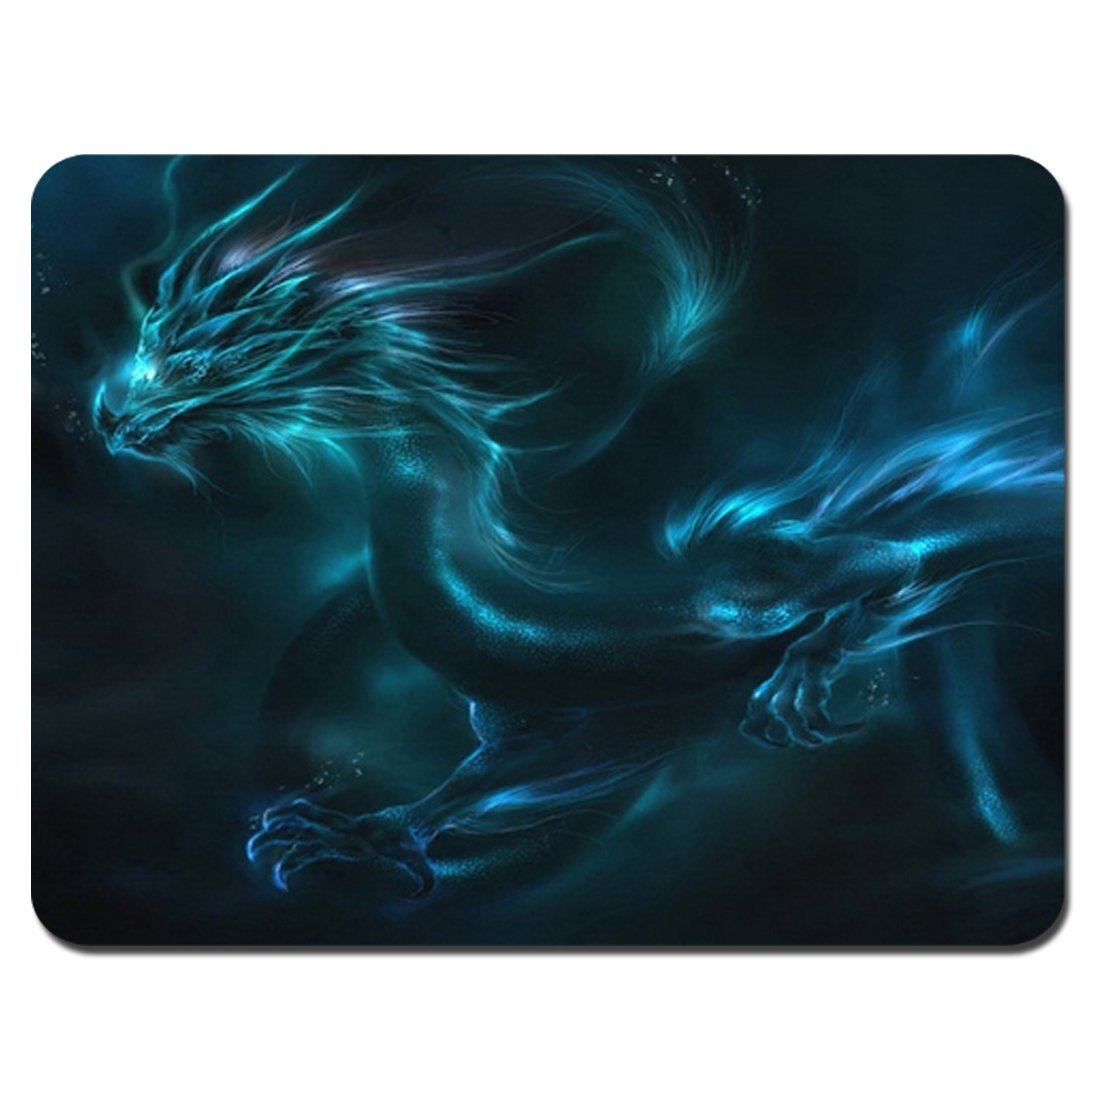 POPCreation Blue Dragon Mouse pads Gaming Mouse Pad 9.84x7.87 inches